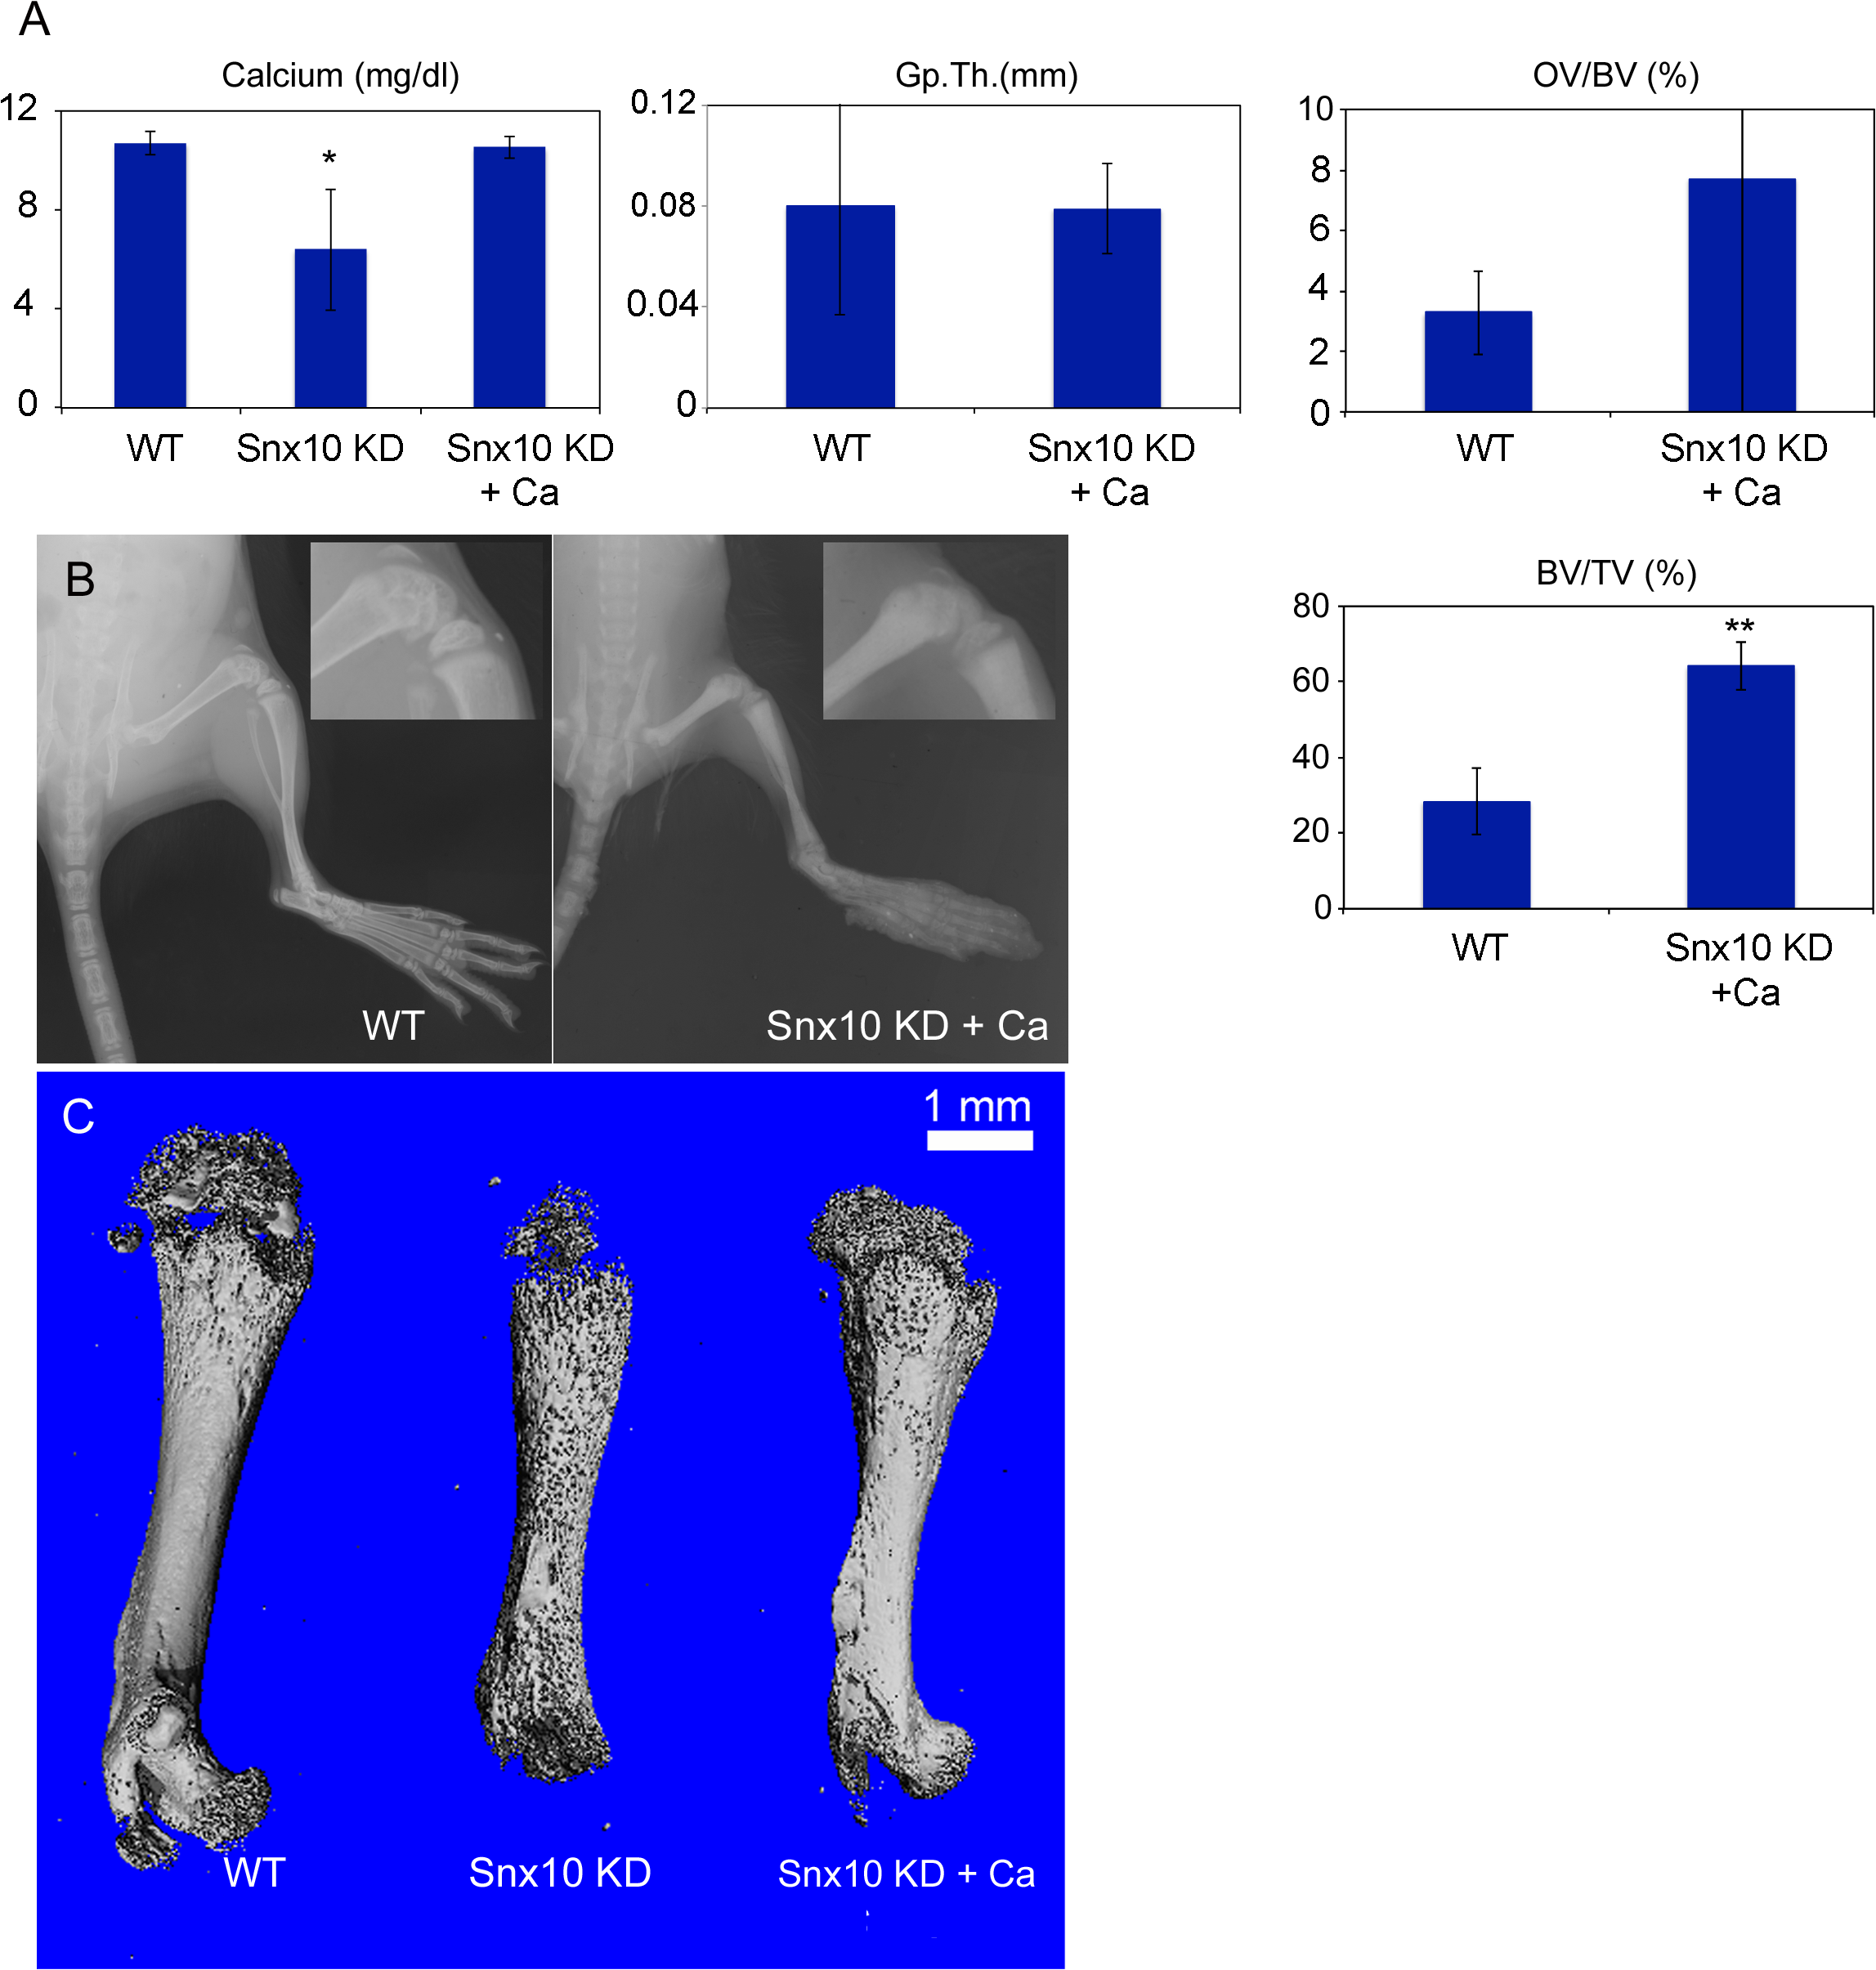 Calcium supplementation can normalize calcium homeostasis and correct the rickets phenotype in Snx10 KD mice.